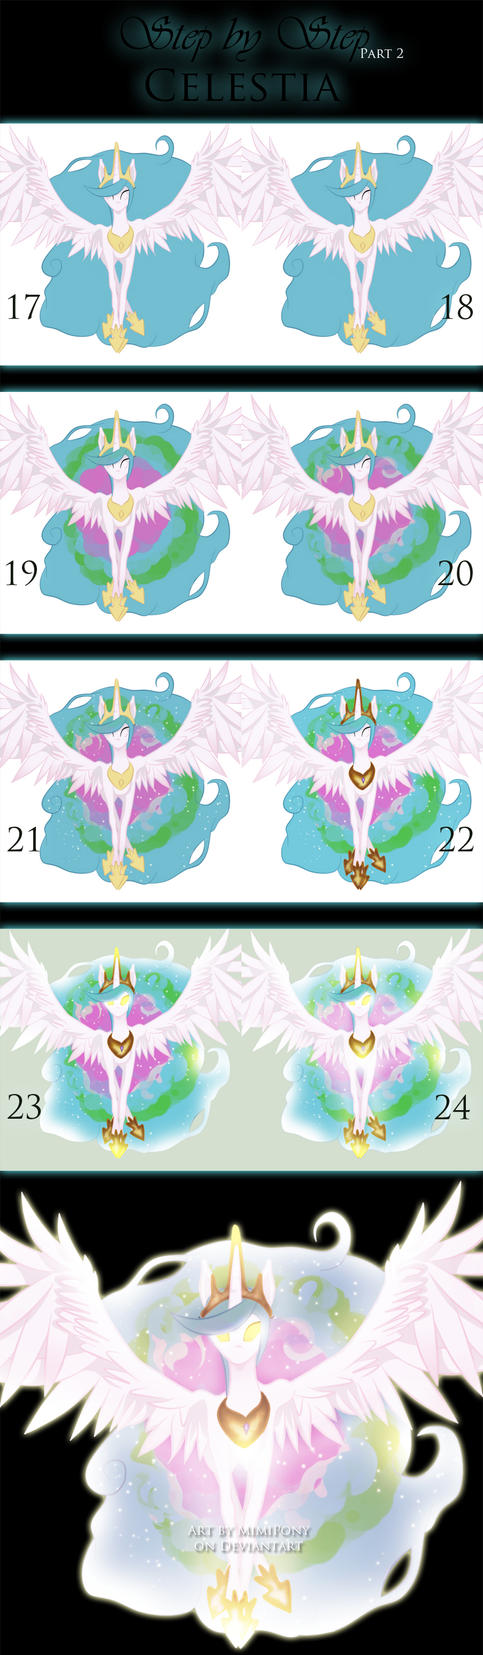 Step by Step : Celestia (Part 2) by MimiPony